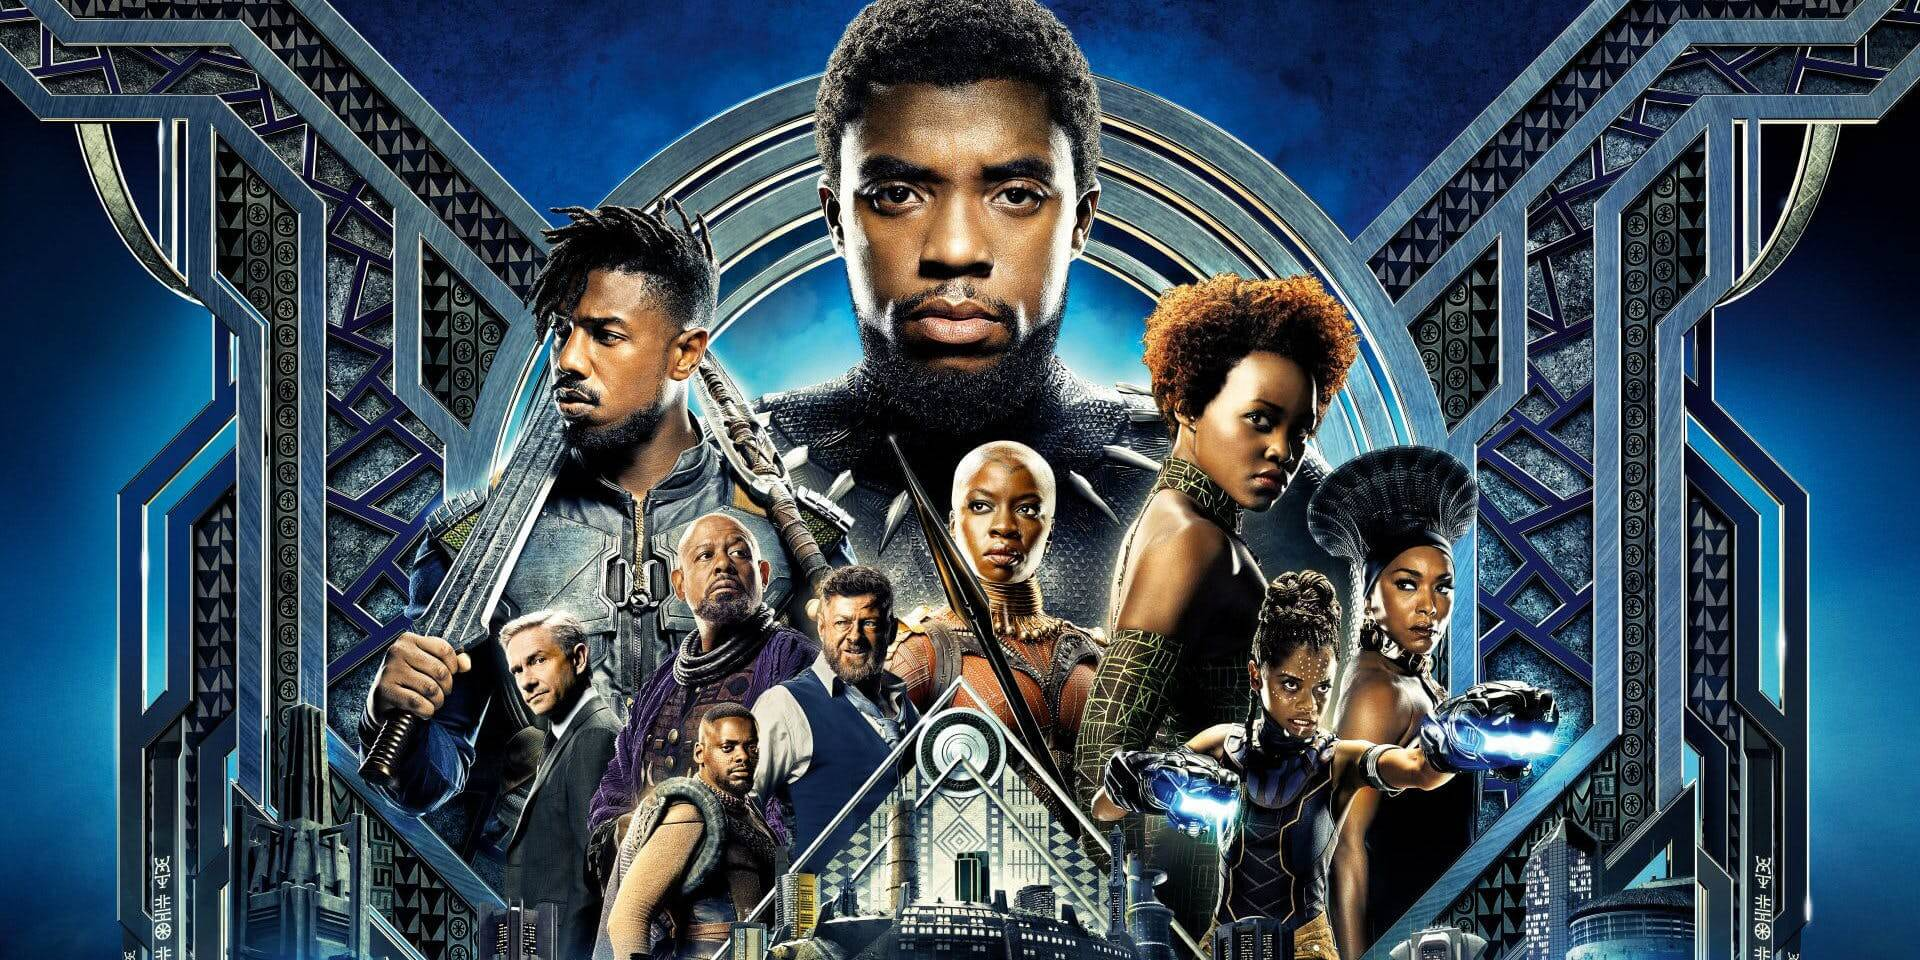 Black Panther gets nominated